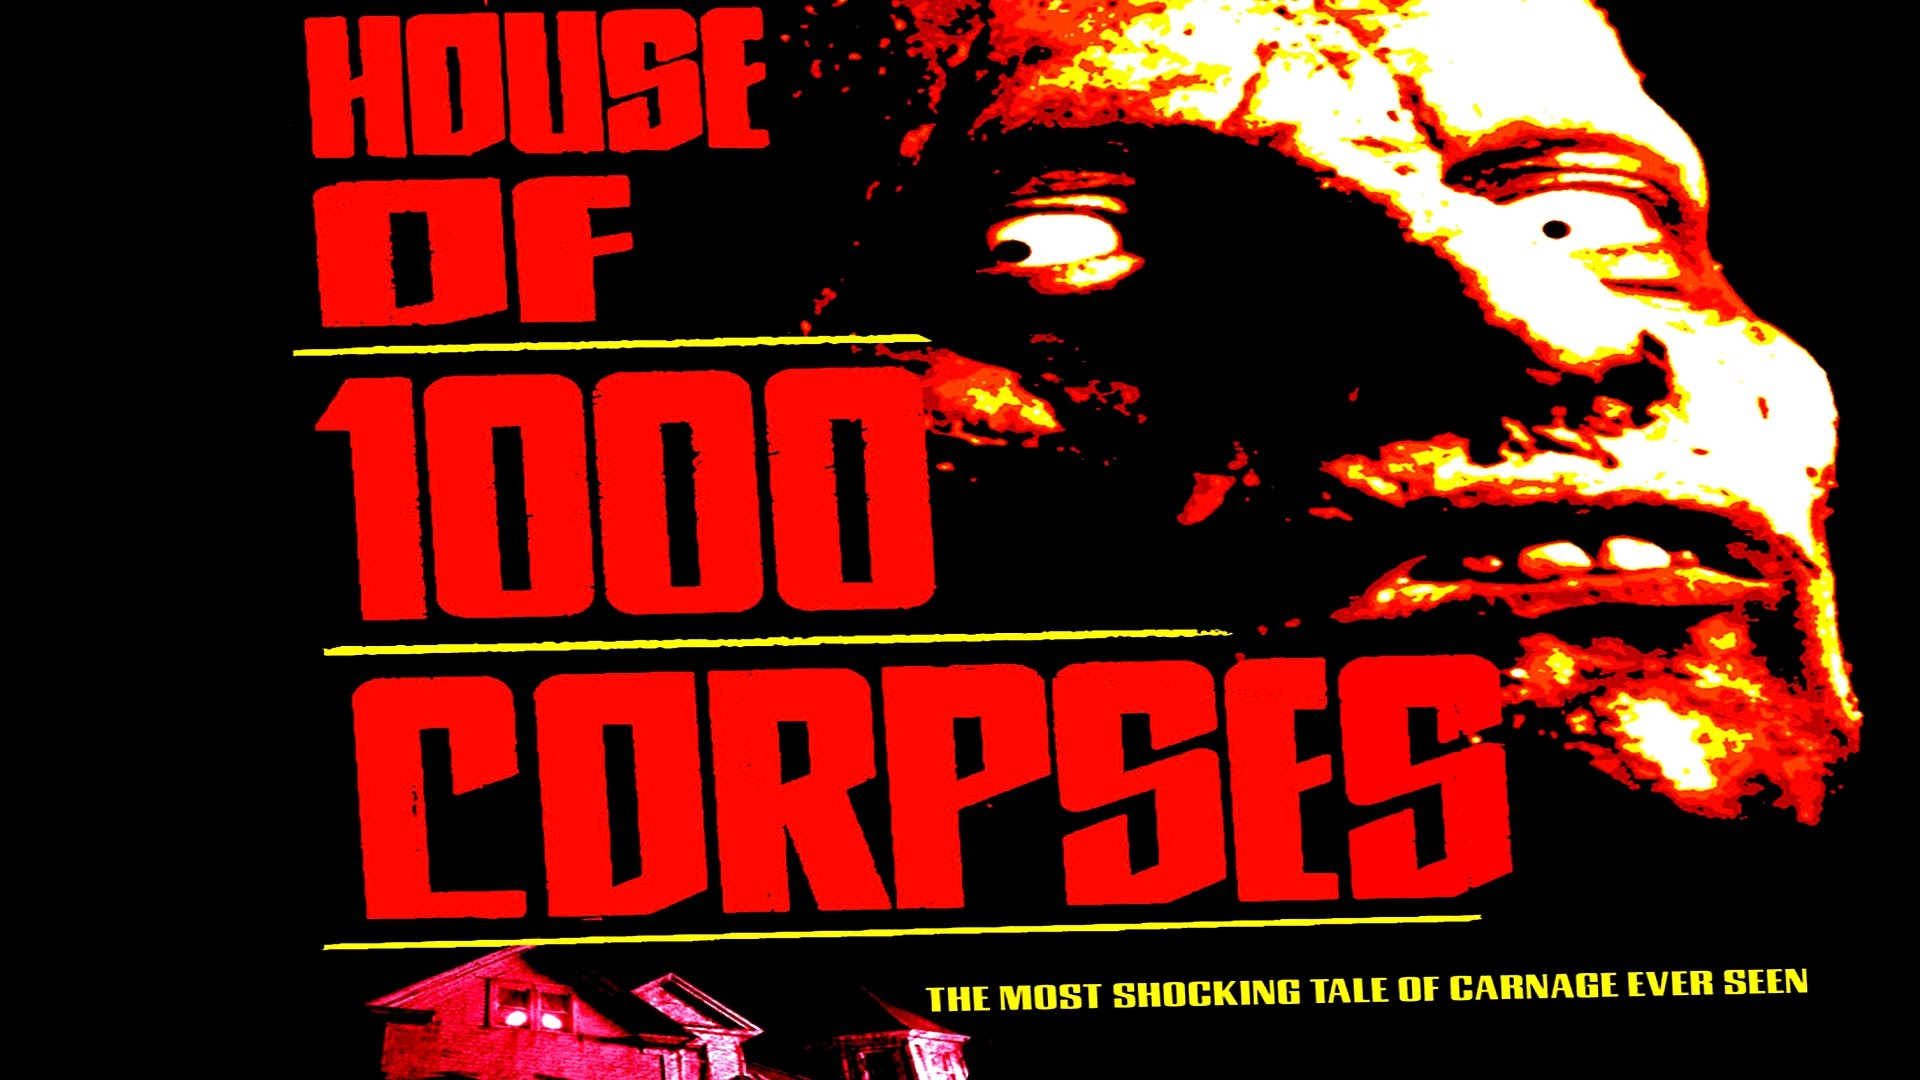 Love Quotes Cell Phone Wallpapers Download House Of 1000 Corpses Wallpaper Gallery